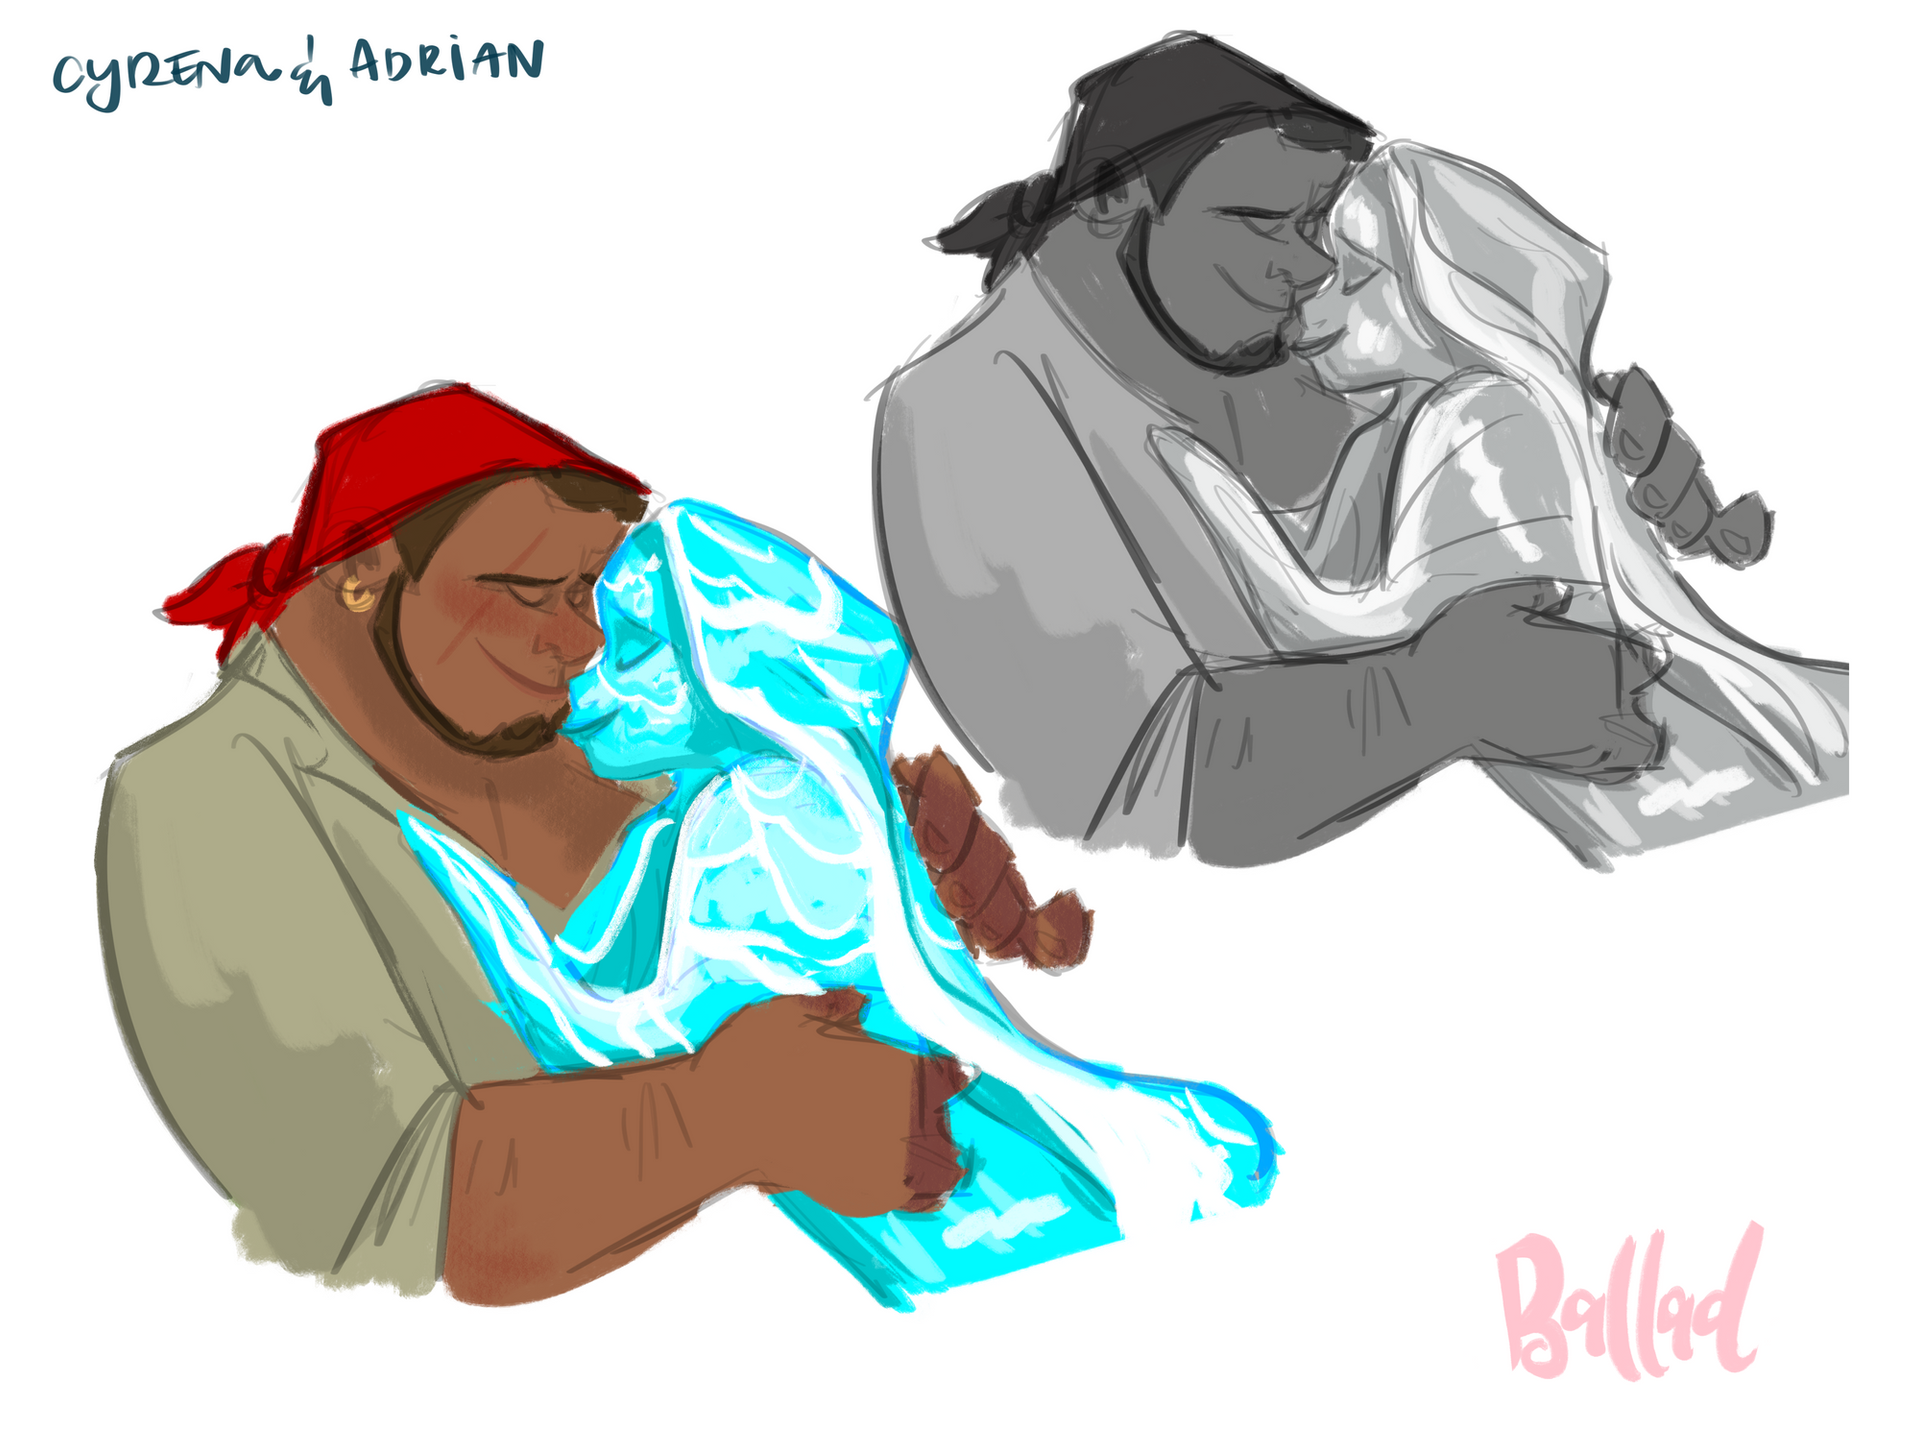 Early Adrian/Cyrena Concept